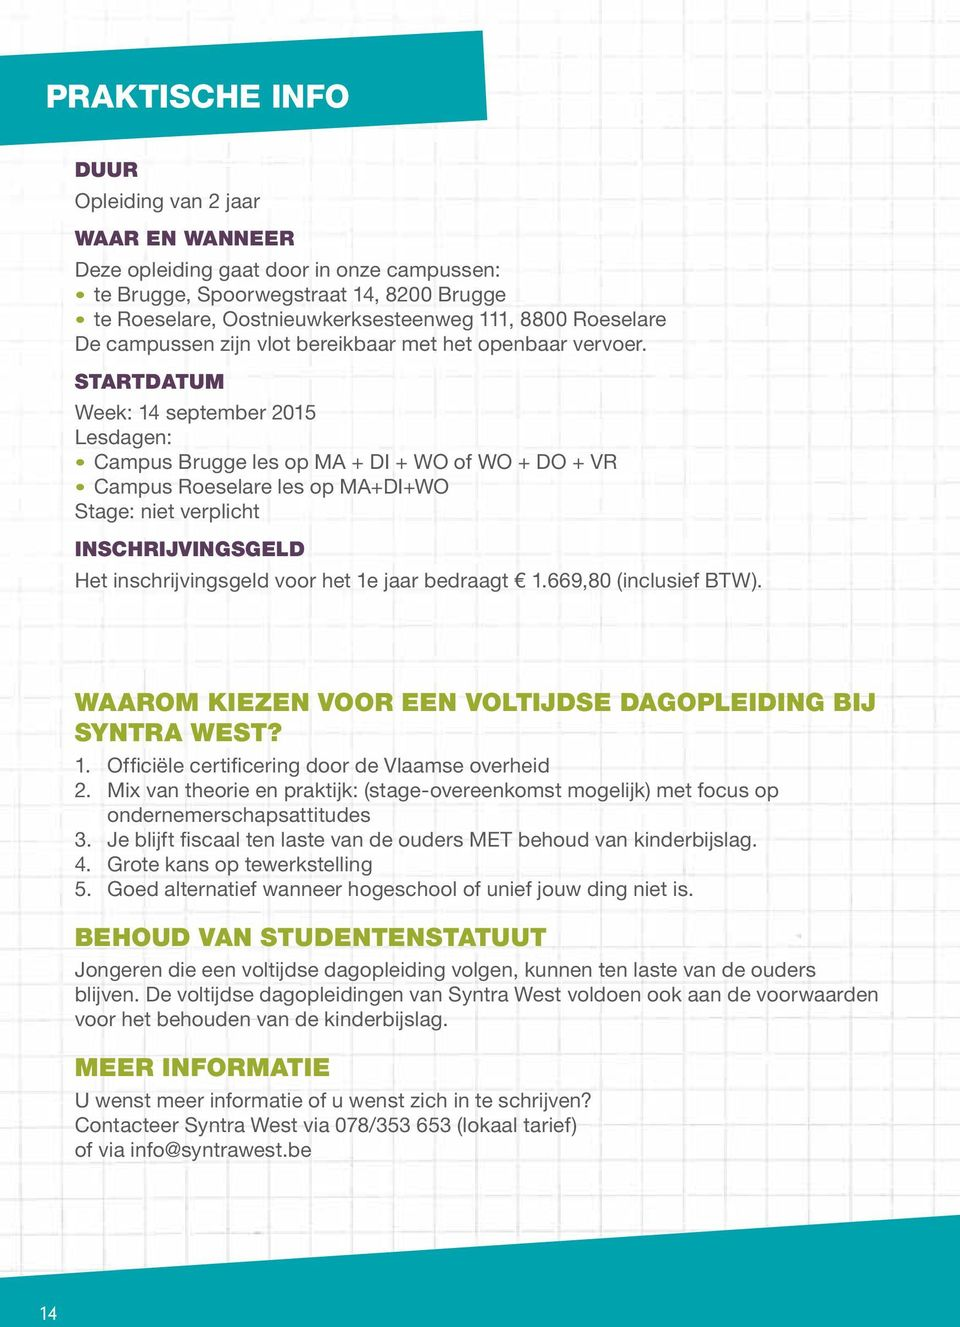 STARTDATUM Week: 14 september 2015 Lesdagen: Campus Brugge les op MA + DI + WO of WO + DO + VR Campus Roeselare les op MA+DI+WO Stage: niet verplicht INSCHRIJVINGSGELD Het inschrijvingsgeld voor het